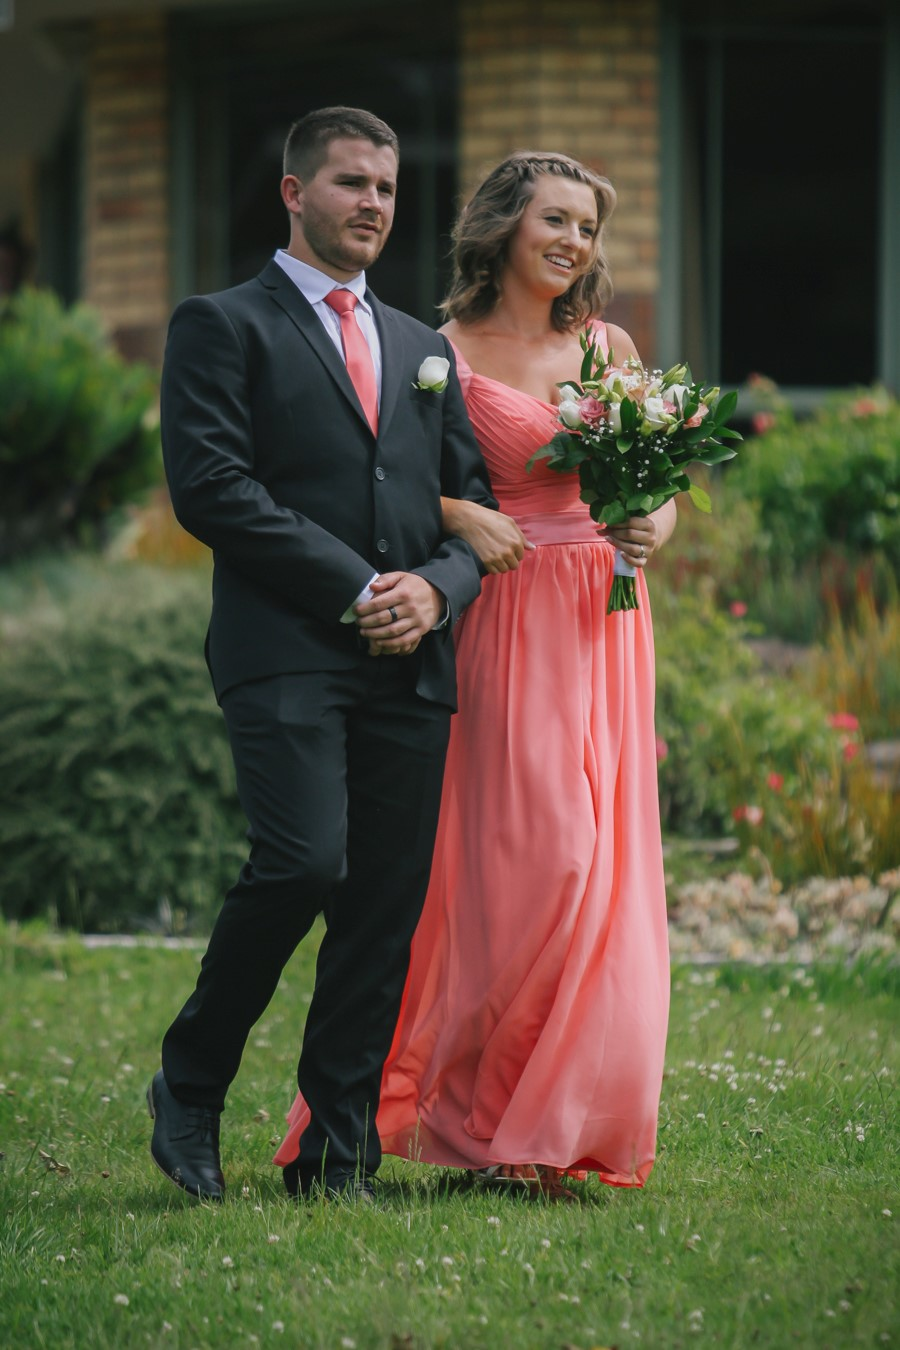 silverdale_wedding_nz_photographer-42